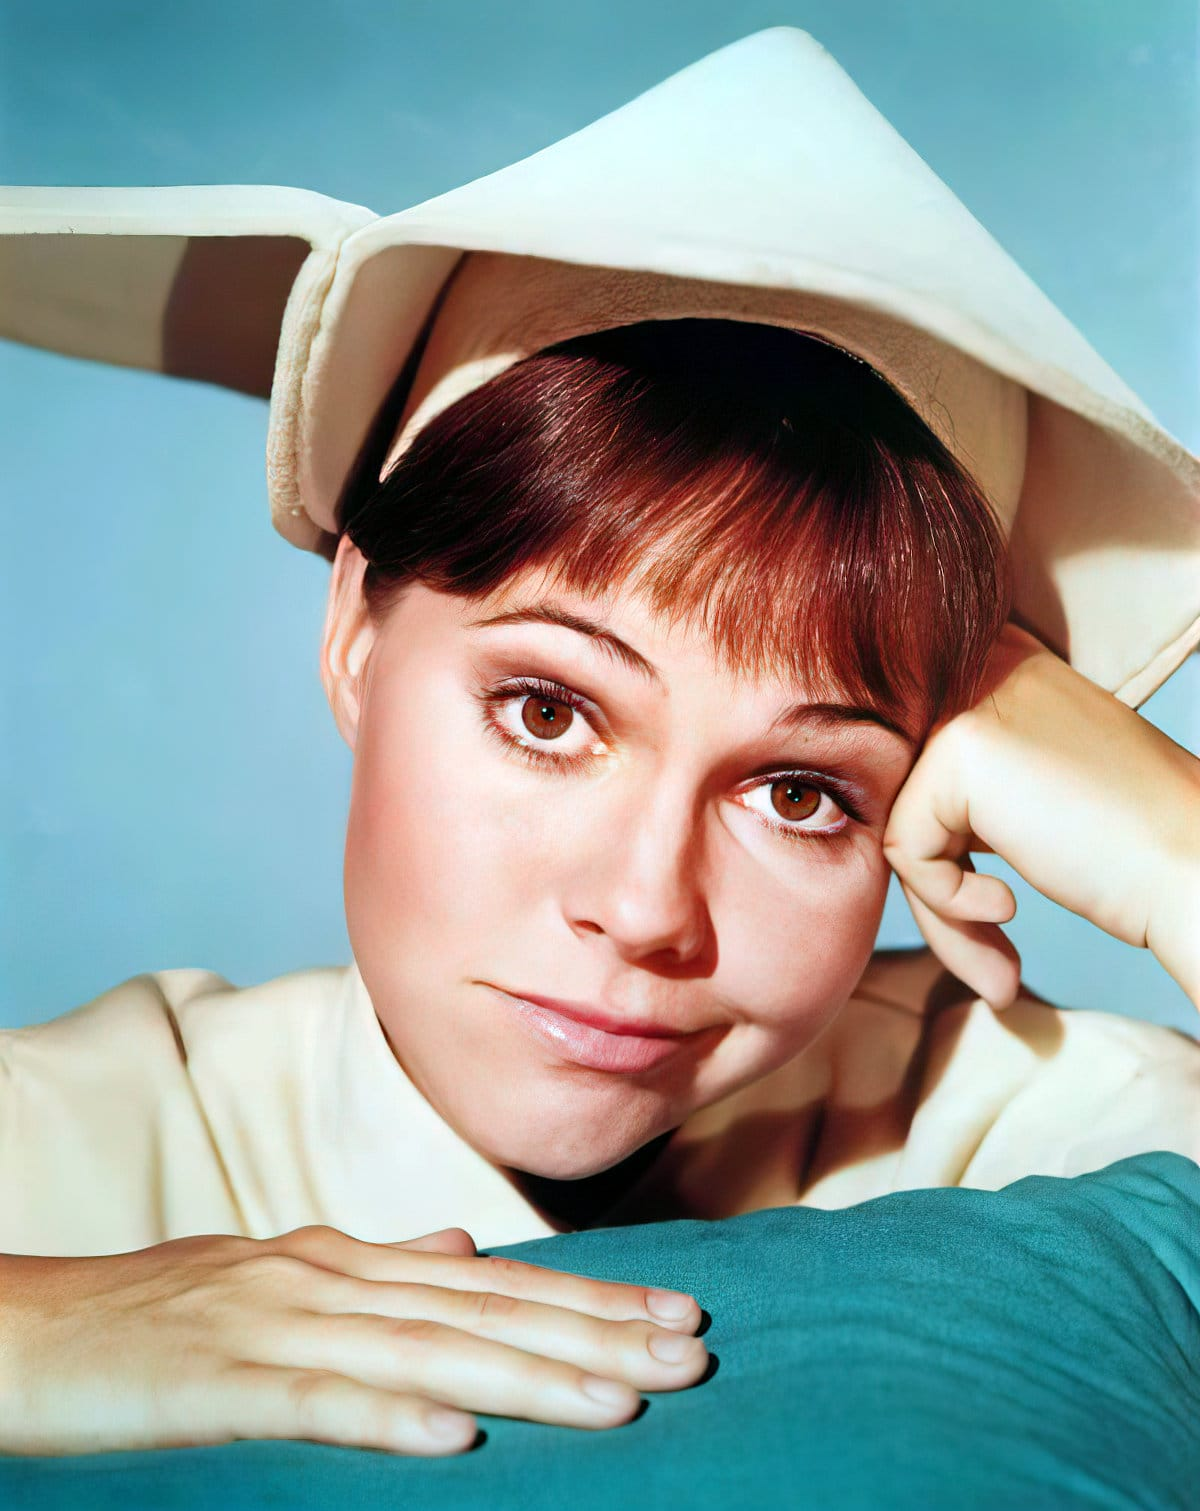 Sally Field as the Flying Nun - Vintage TV show